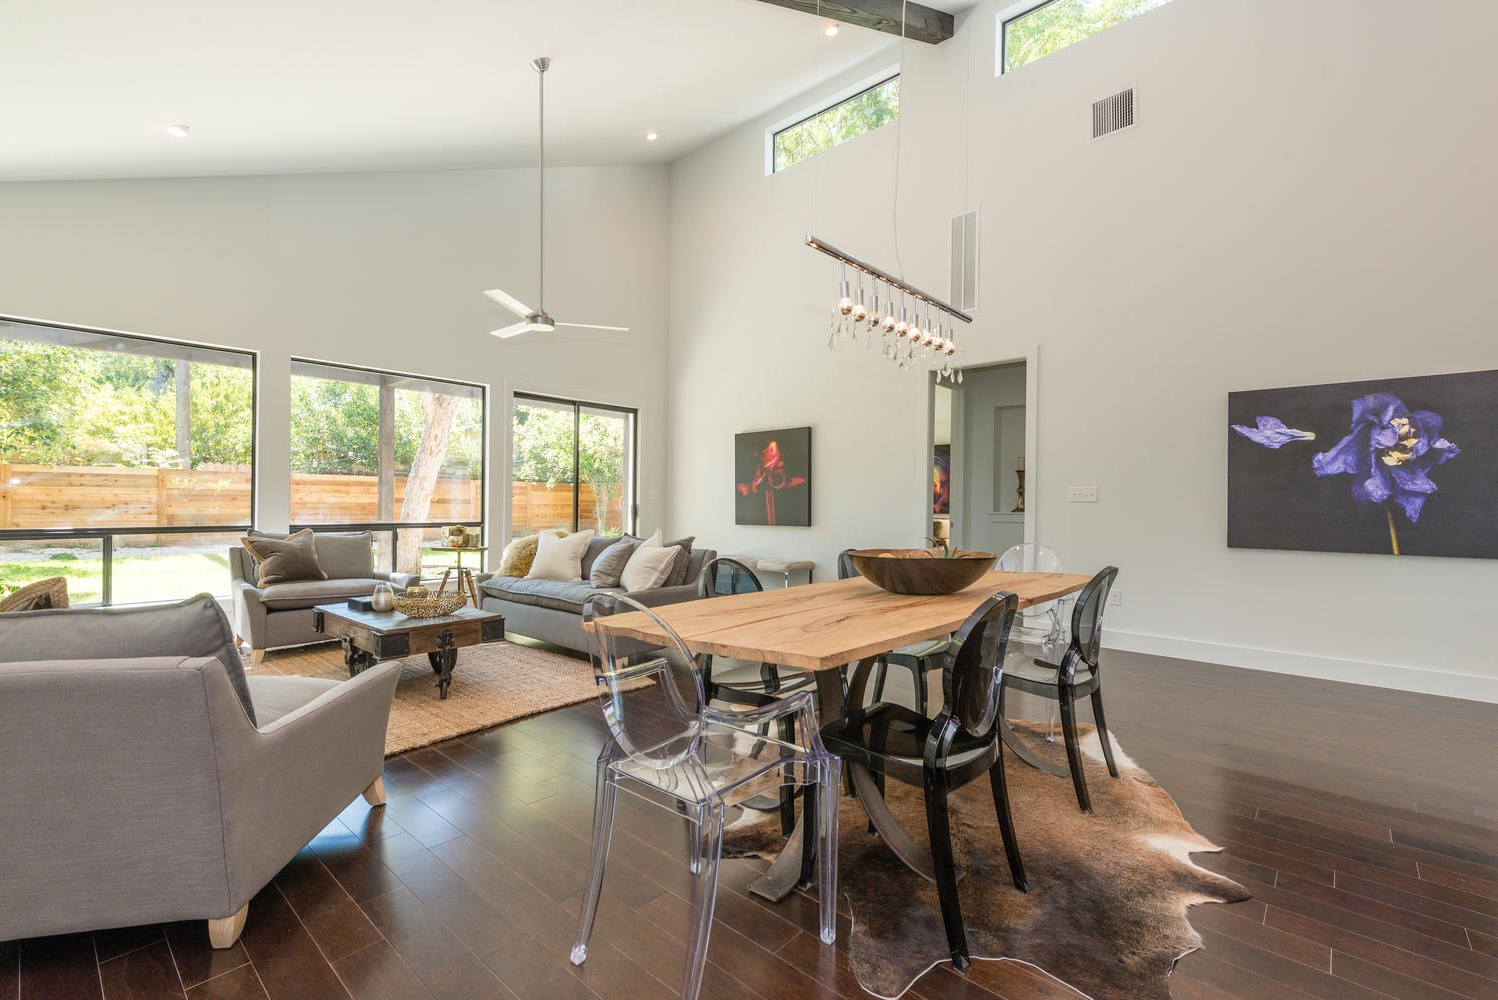 Contemporary Open Dining And Living Room Combination (Image 13 of 34)